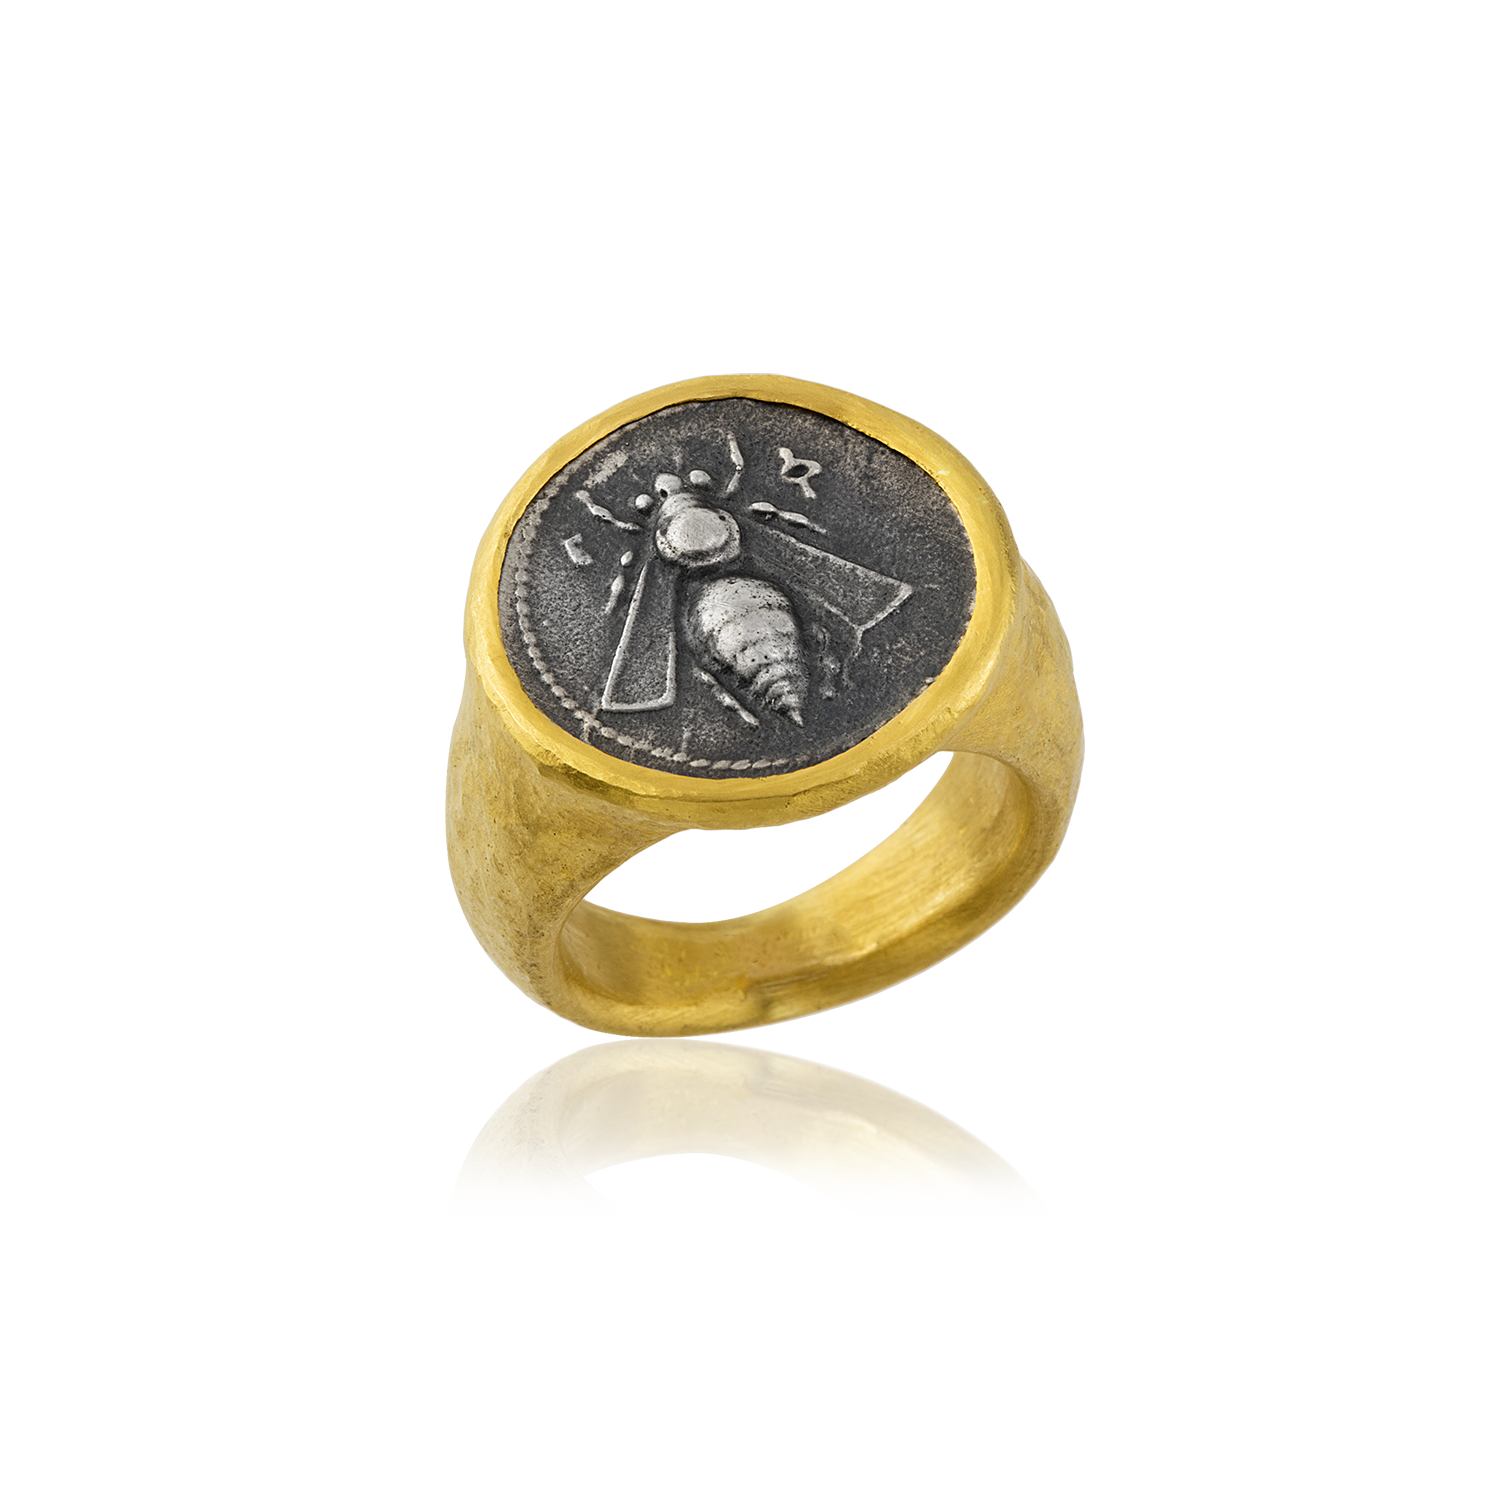 24K Pure Gold Scarabe Coin Rings